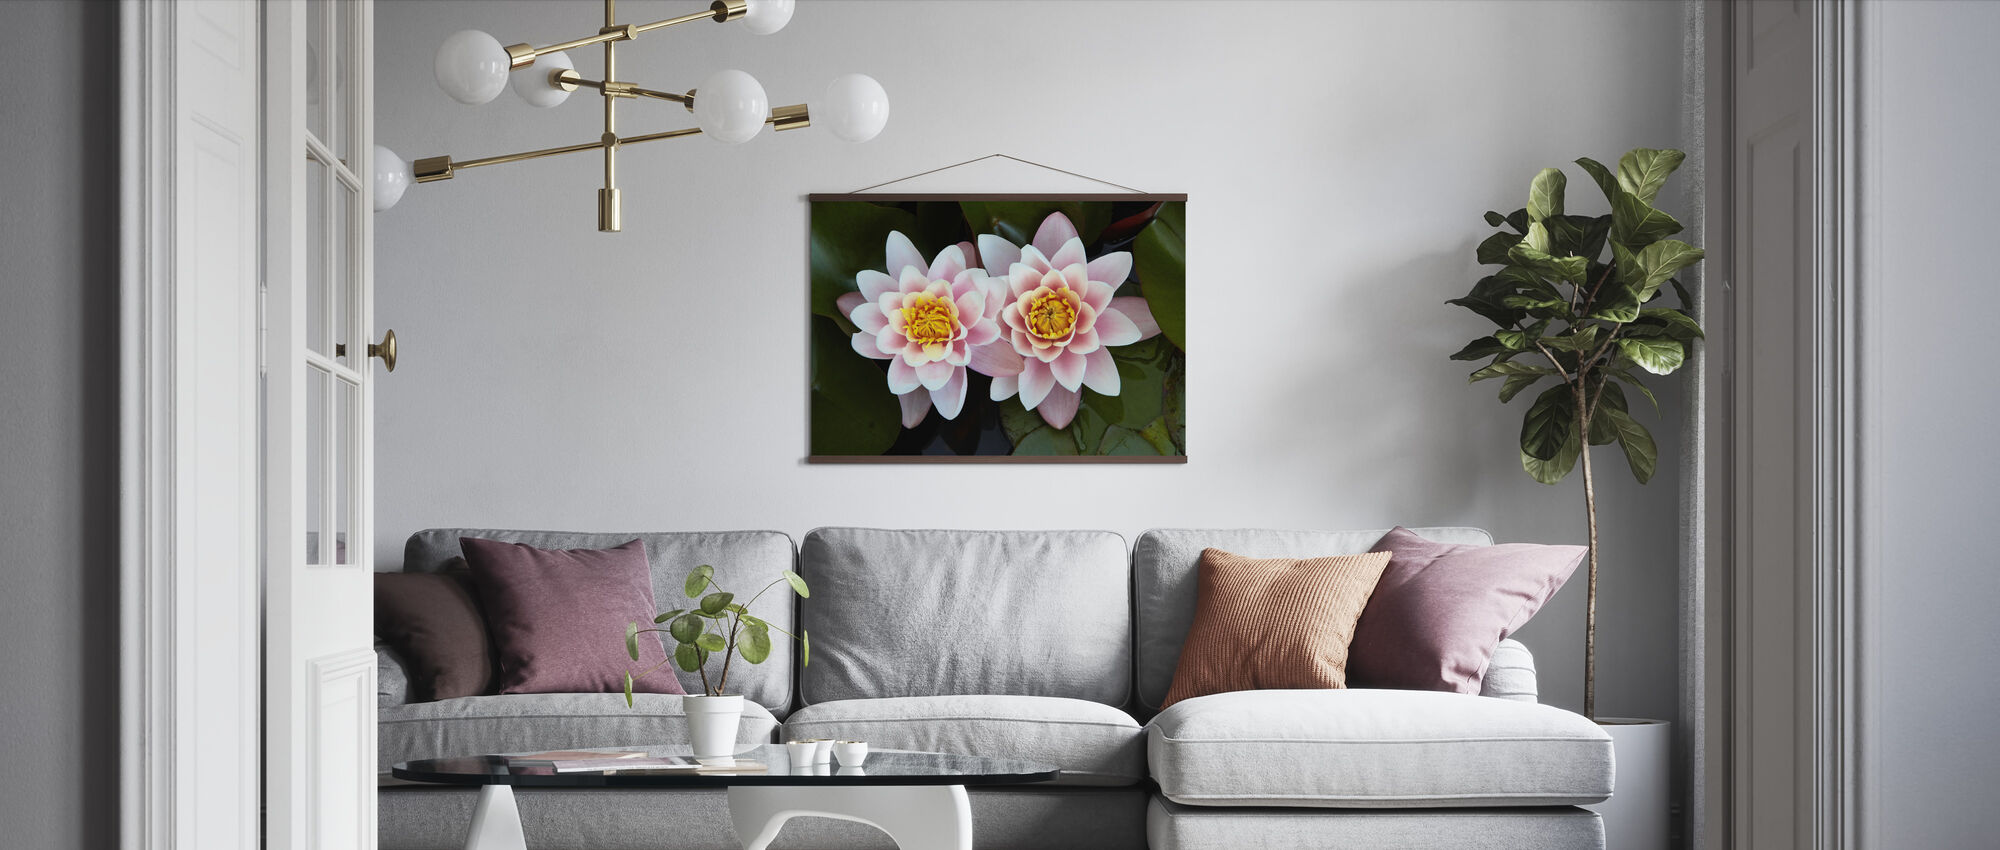 Pair of Water Lilies - Poster - Living Room